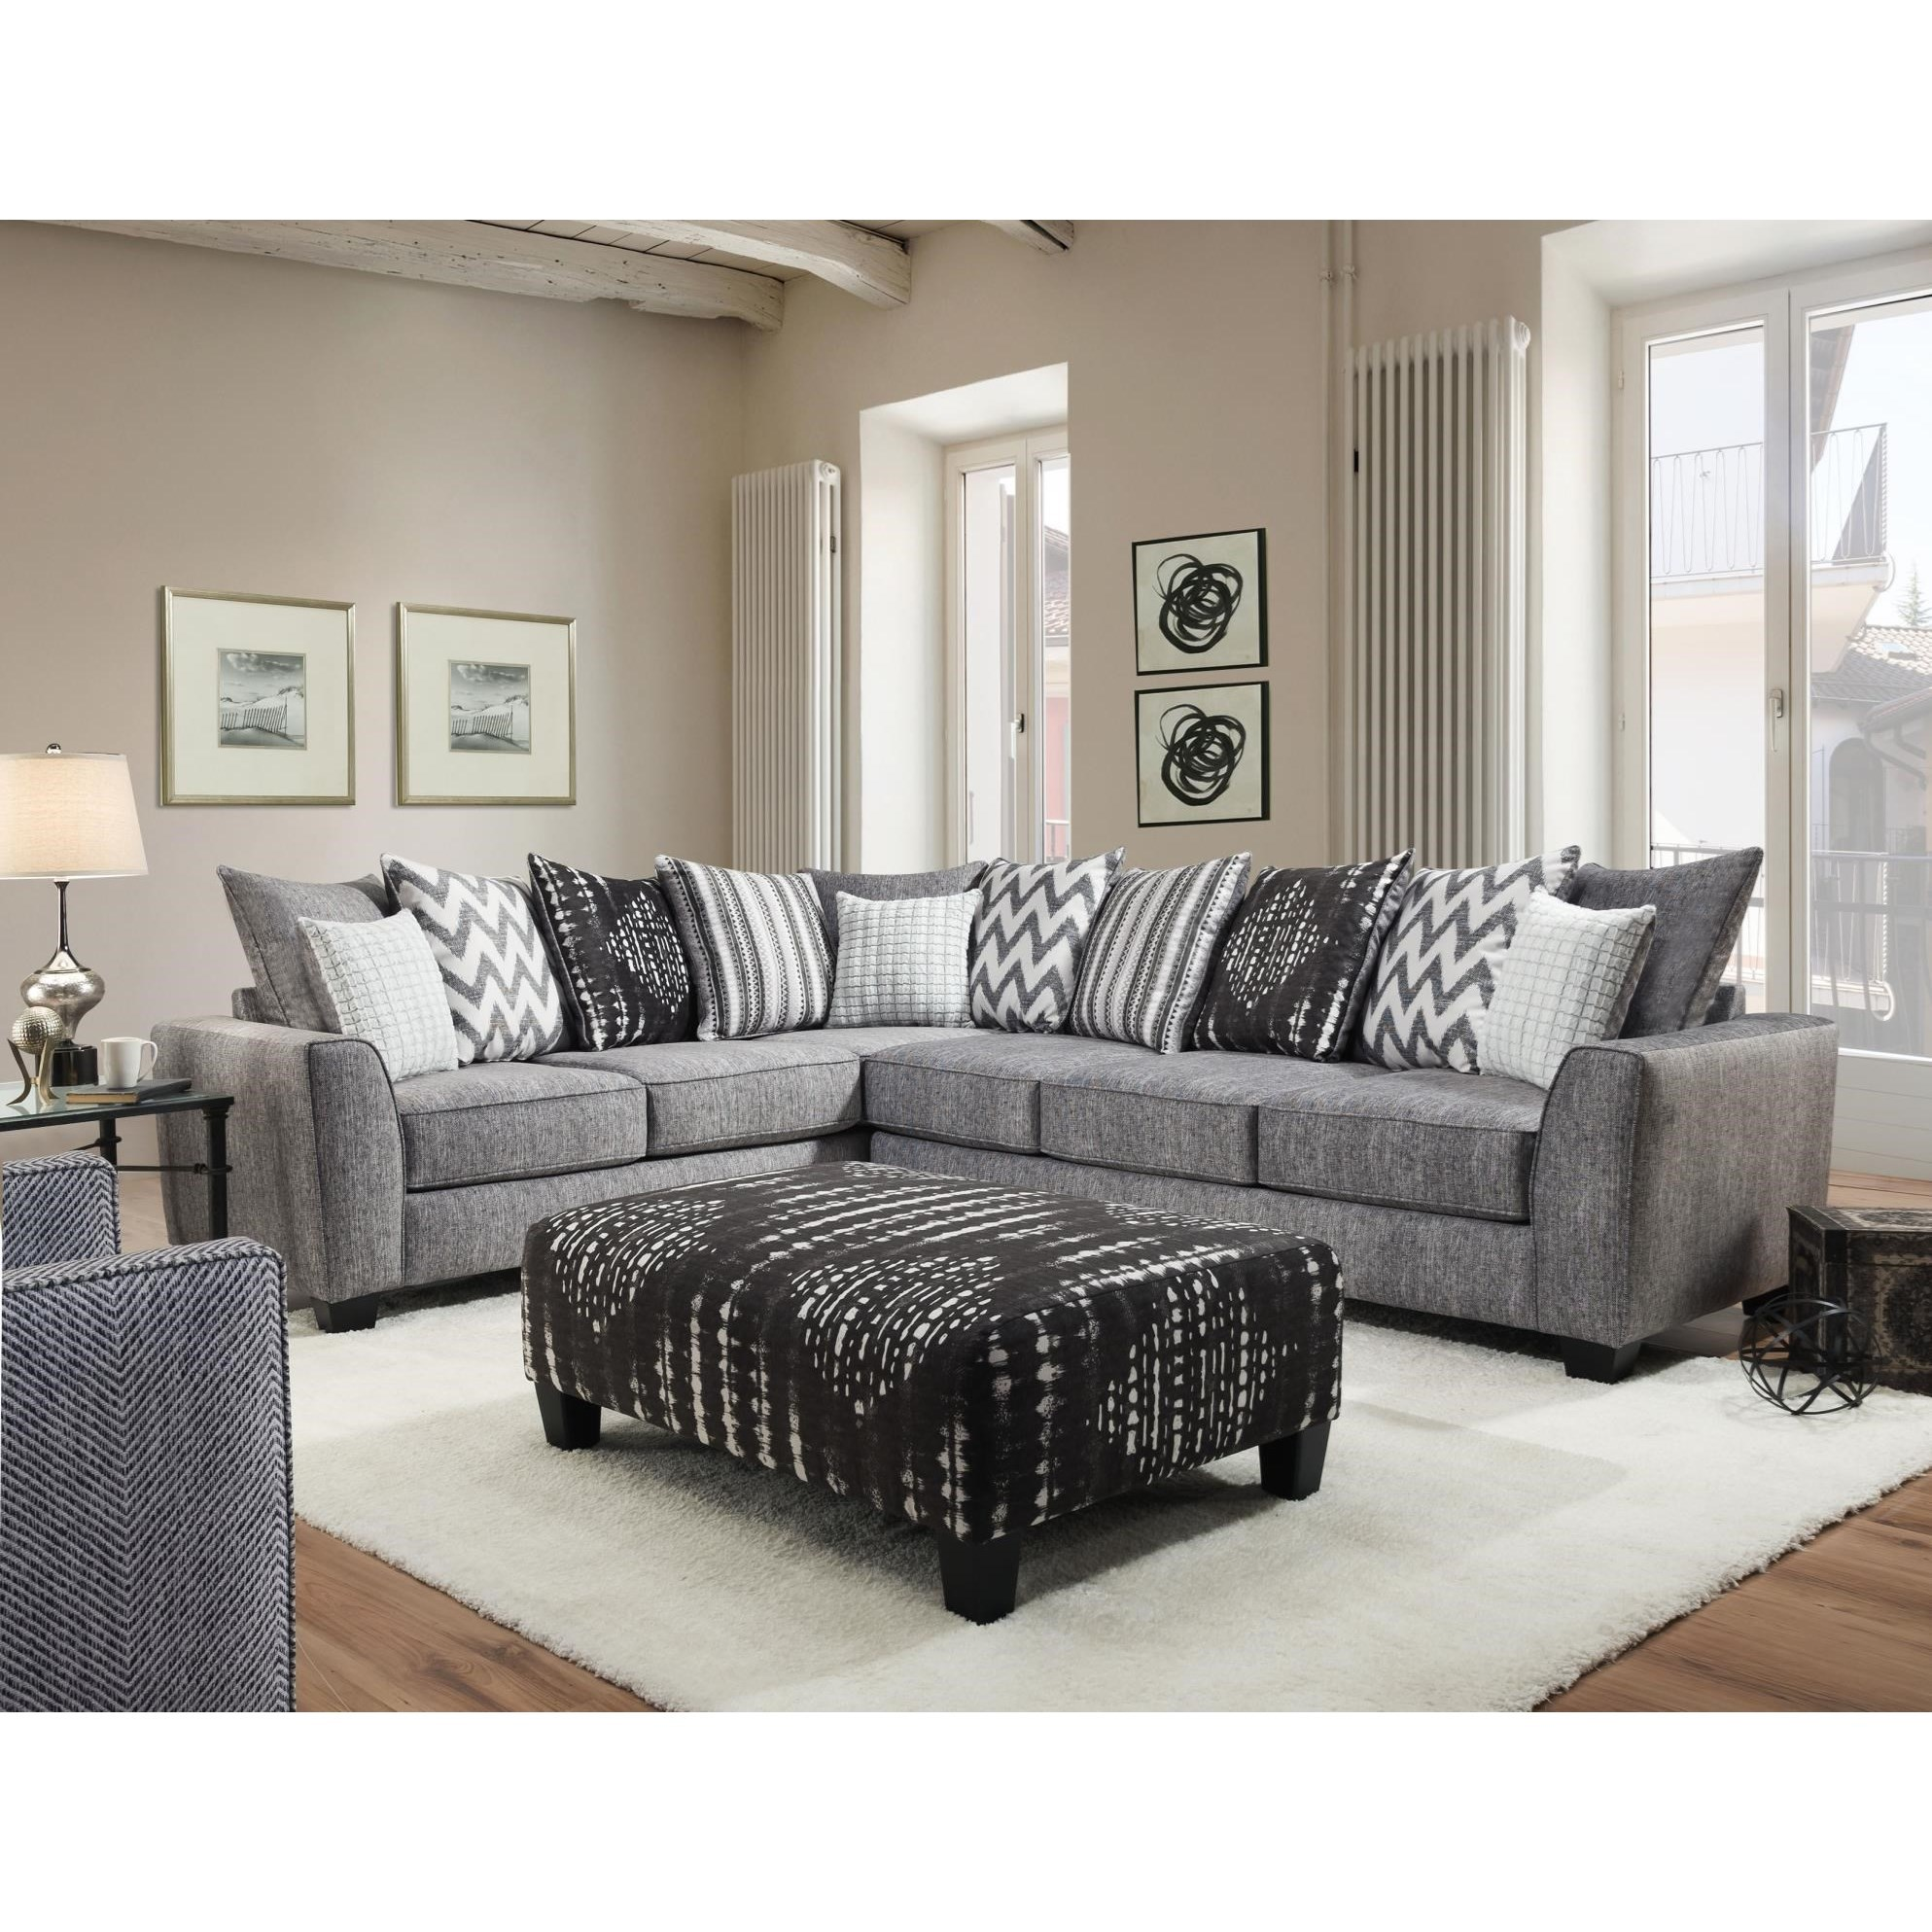 484 2 PC Sectional Sofa Sleeper by Albany at A1 Furniture & Mattress